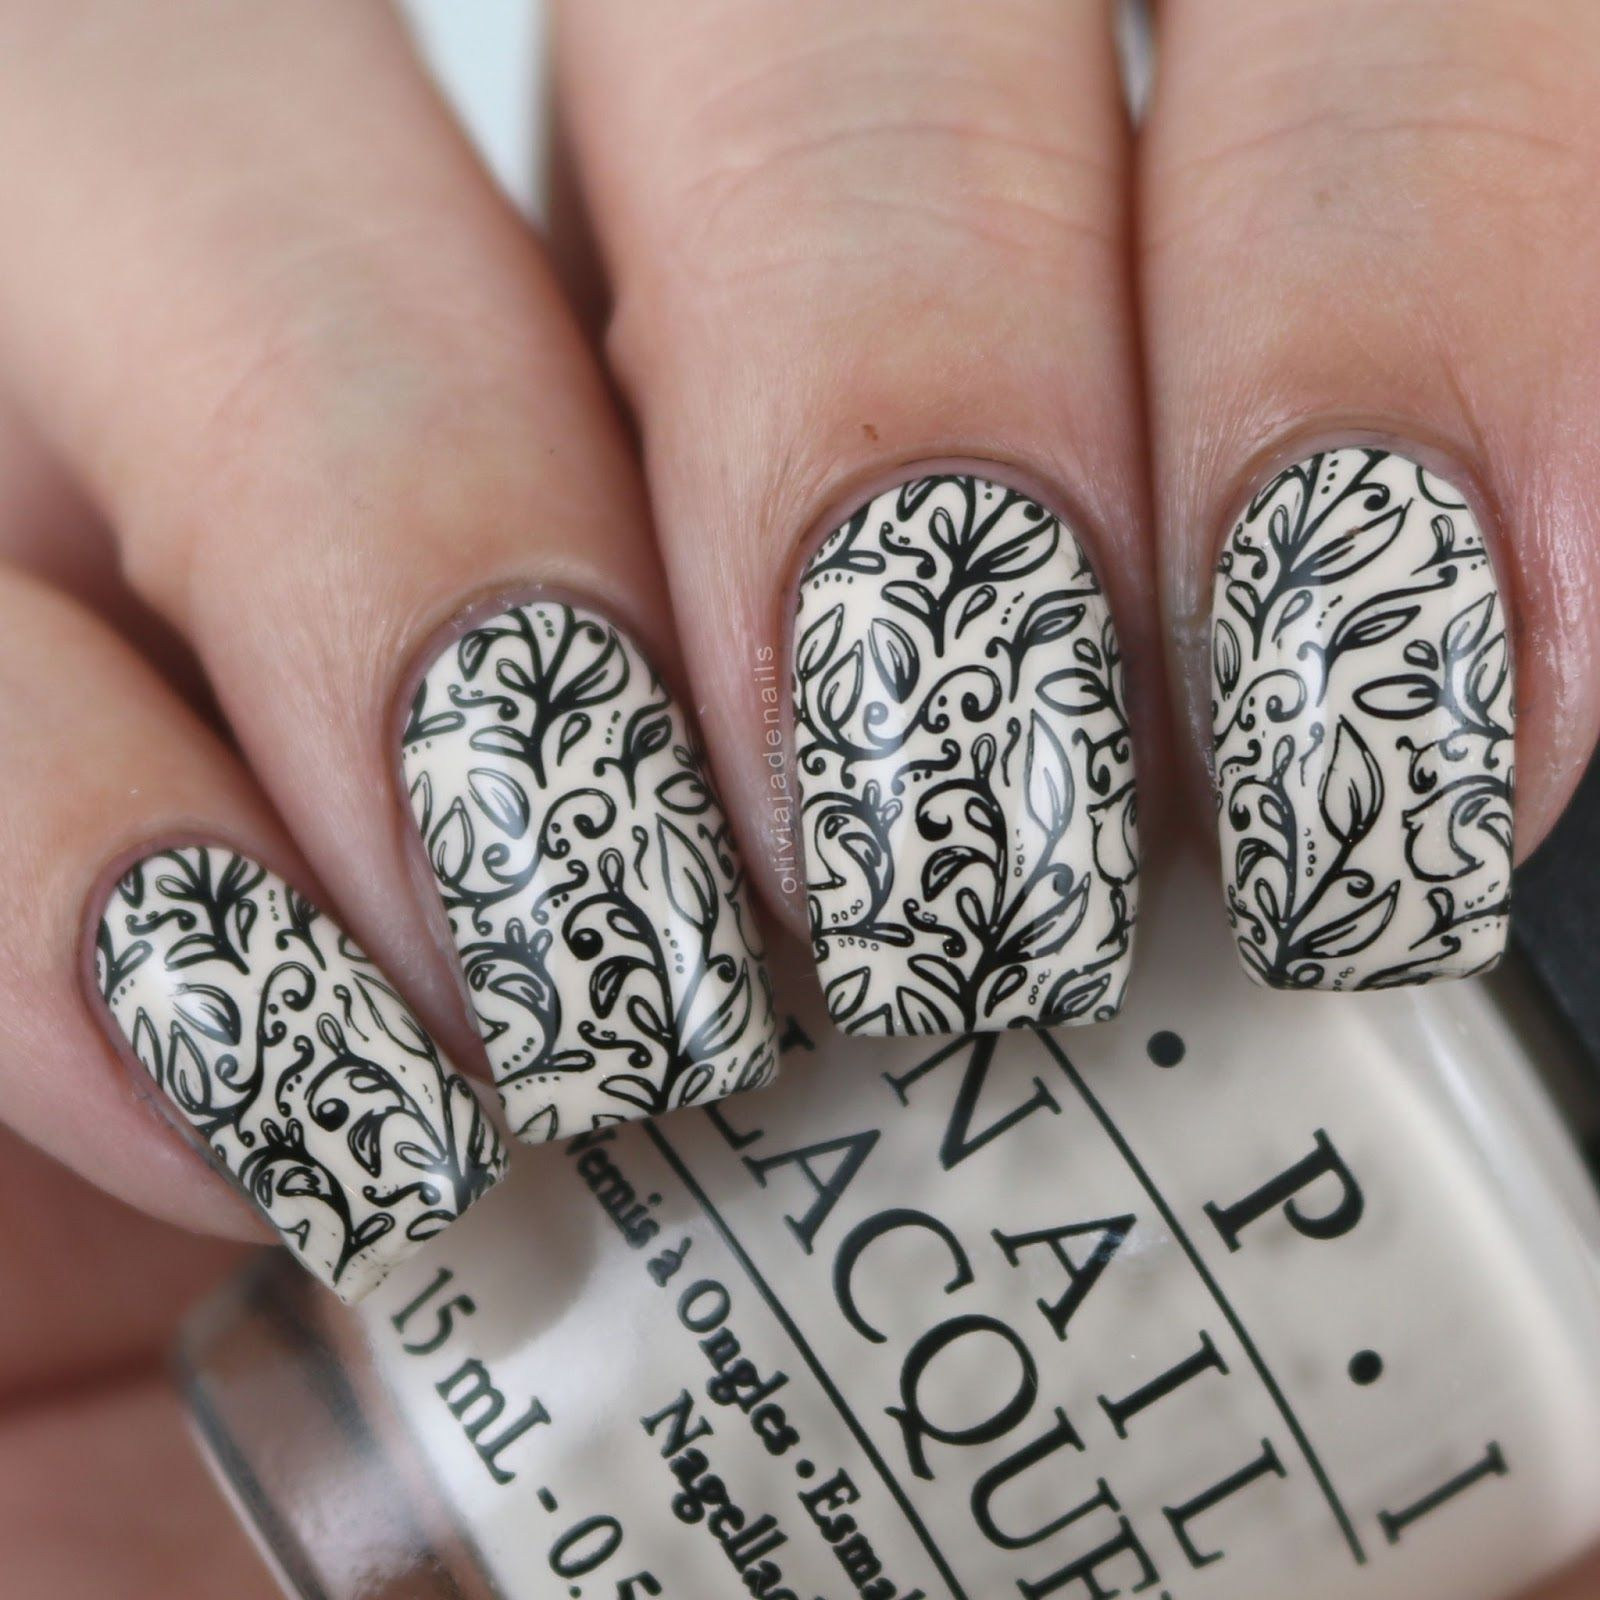 UberChic Beauty Lovely Leaves Stamping Plate - Swatches & Review by Olivia Jade Nails. Fall is here! Time to share that lovely fall feeling on your nails! #UberChicBeauty #UberChic #nails #nailaddict #nailart #nailstamps #lovelyleaves #fall #leaves